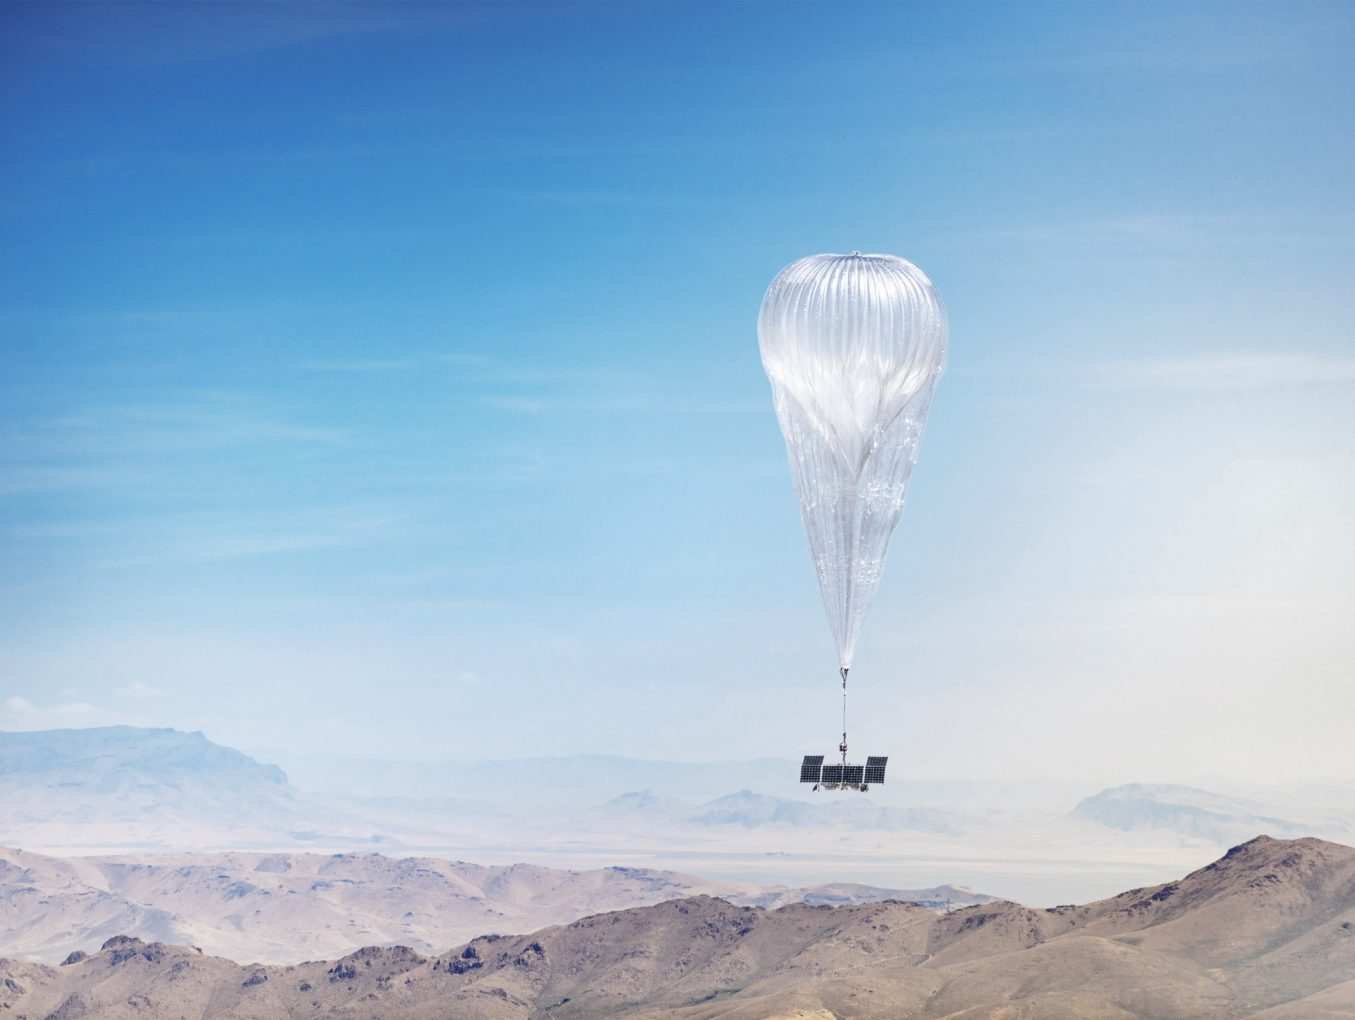 Goodbye to Project Loon.